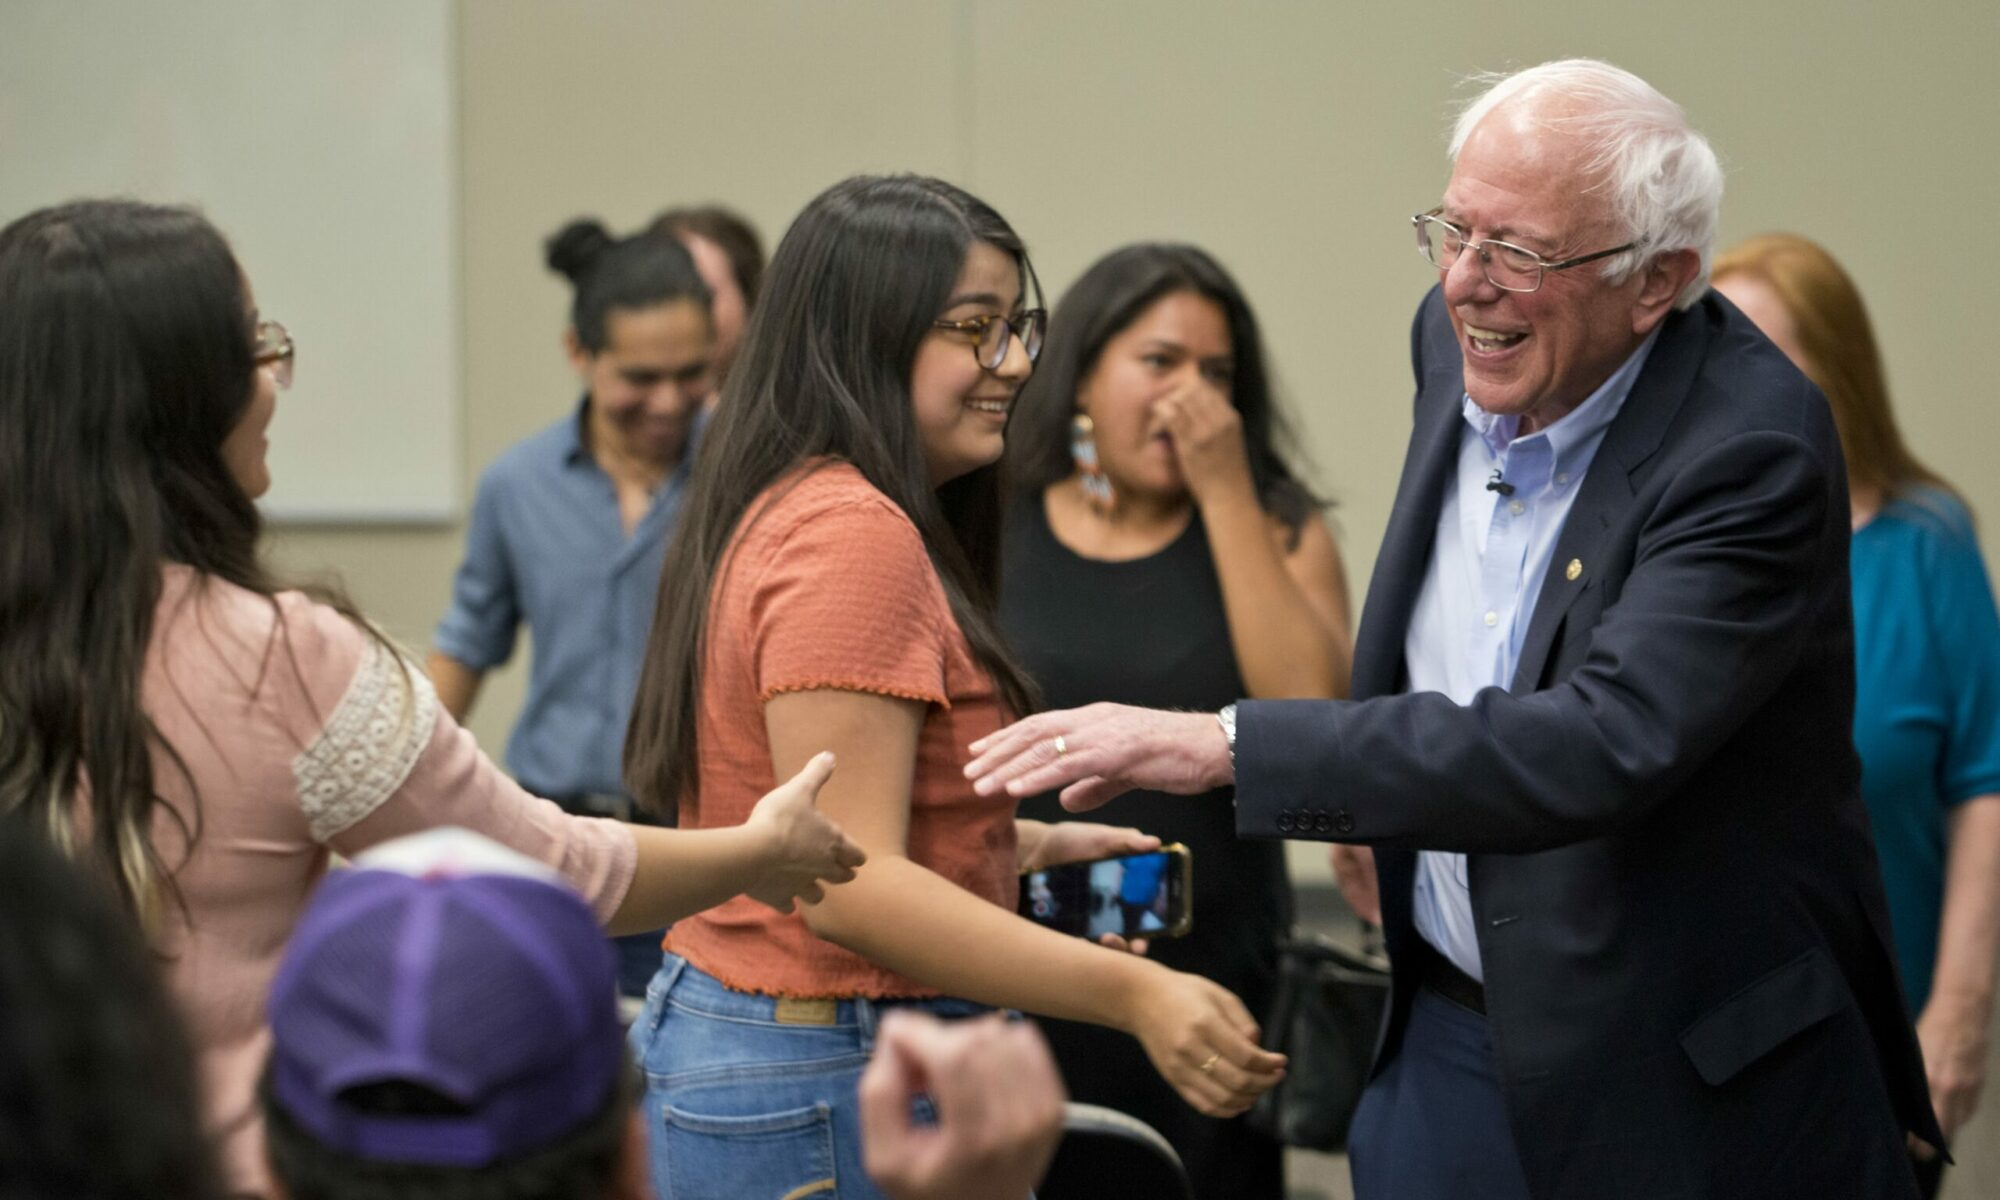 Democratic presidential candidate Sen. Bernie Sanders greets a supporter at a Mijente's El Chisme 2020 event at UNLV in Las Vegas